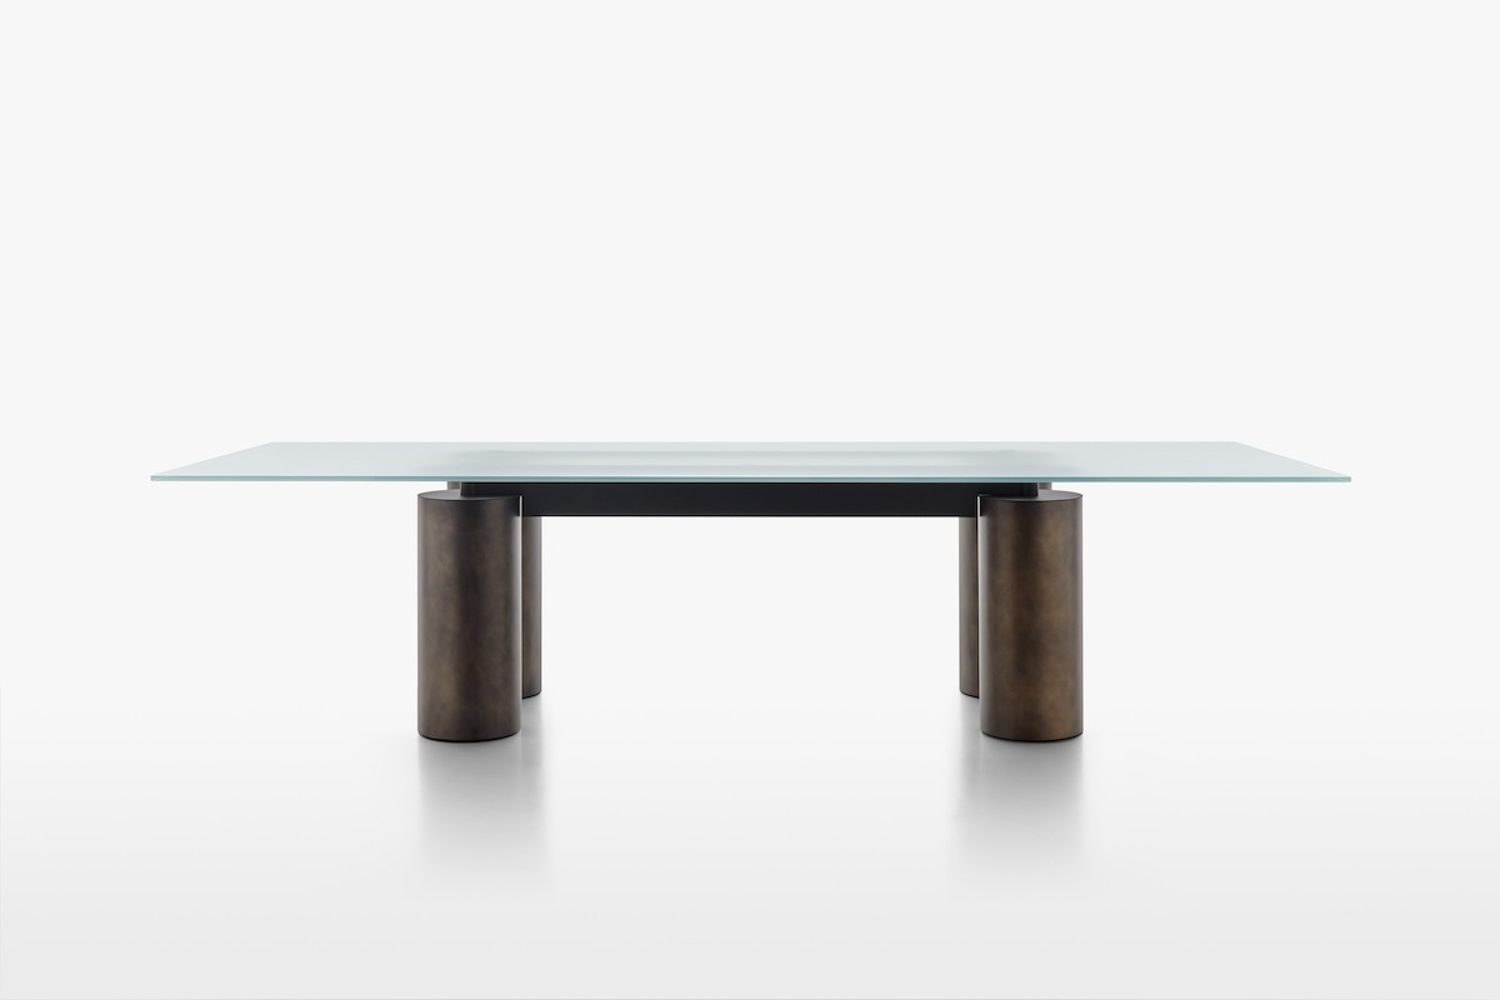 A plane of glass rests on four tubular columns and stretches nearly 10 feet – this striking composition, offered in various states of transparency, defines the Serenissimo table, designed by Lella and Massimo Vignelli and David Law in 1985.